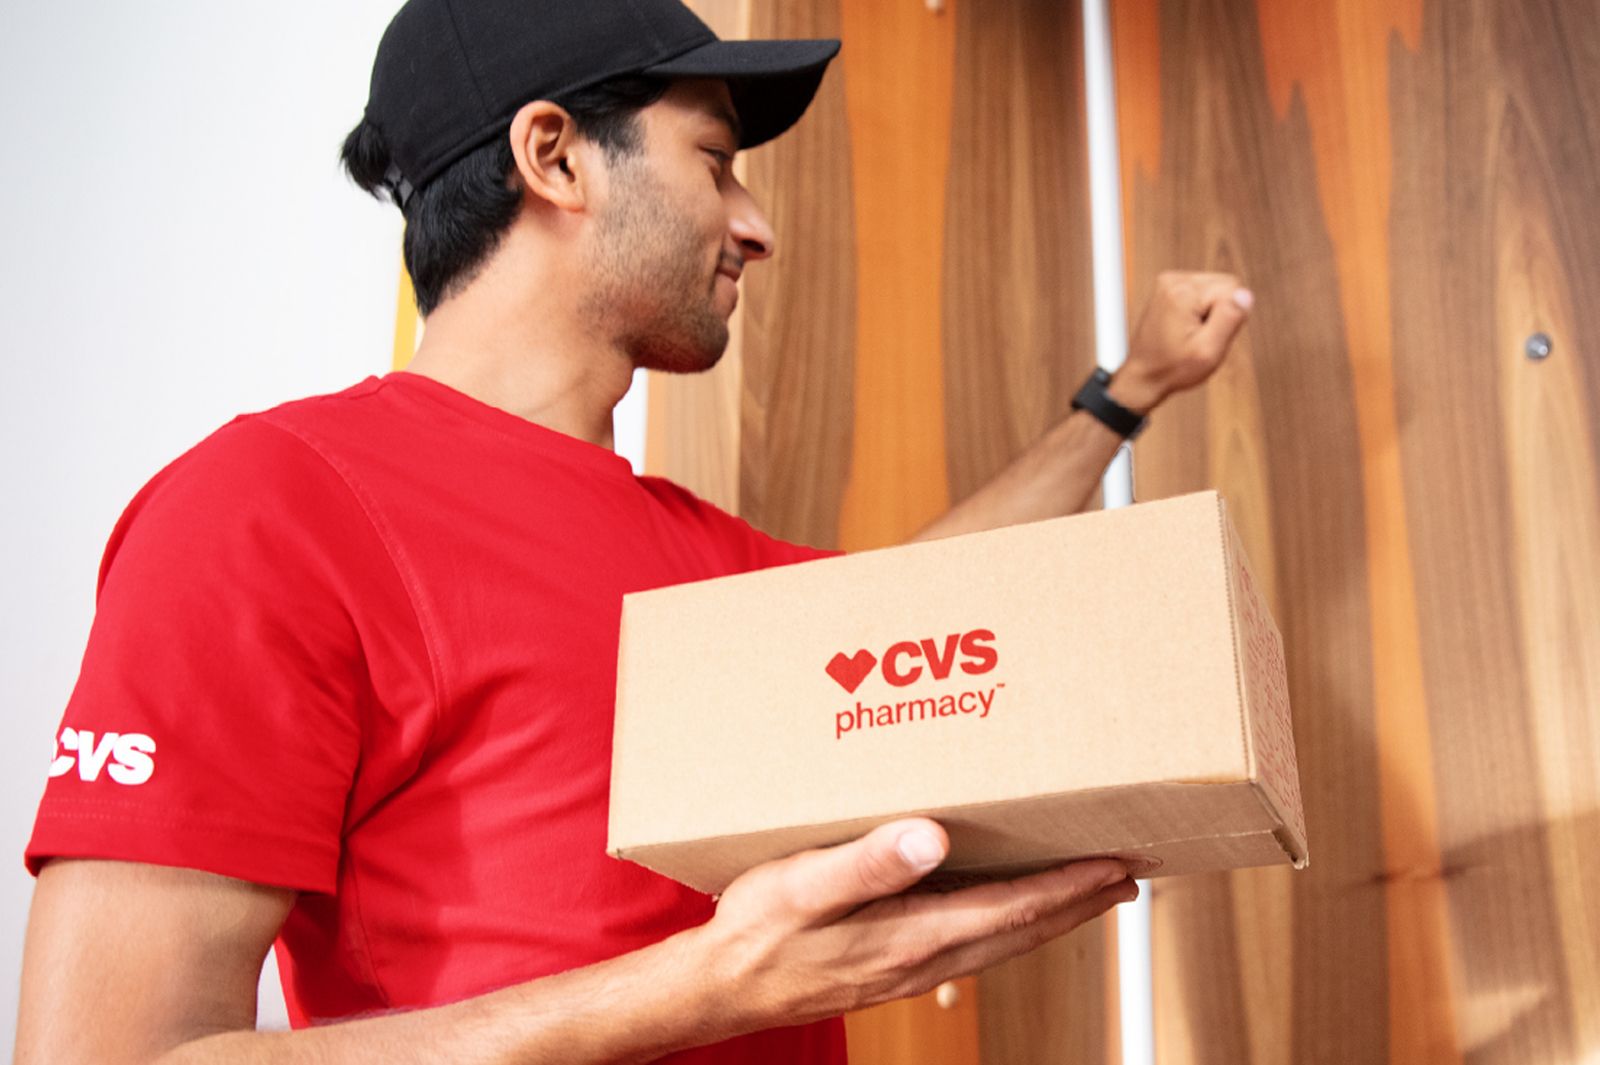 Delivery worker delivering a CVS Health package